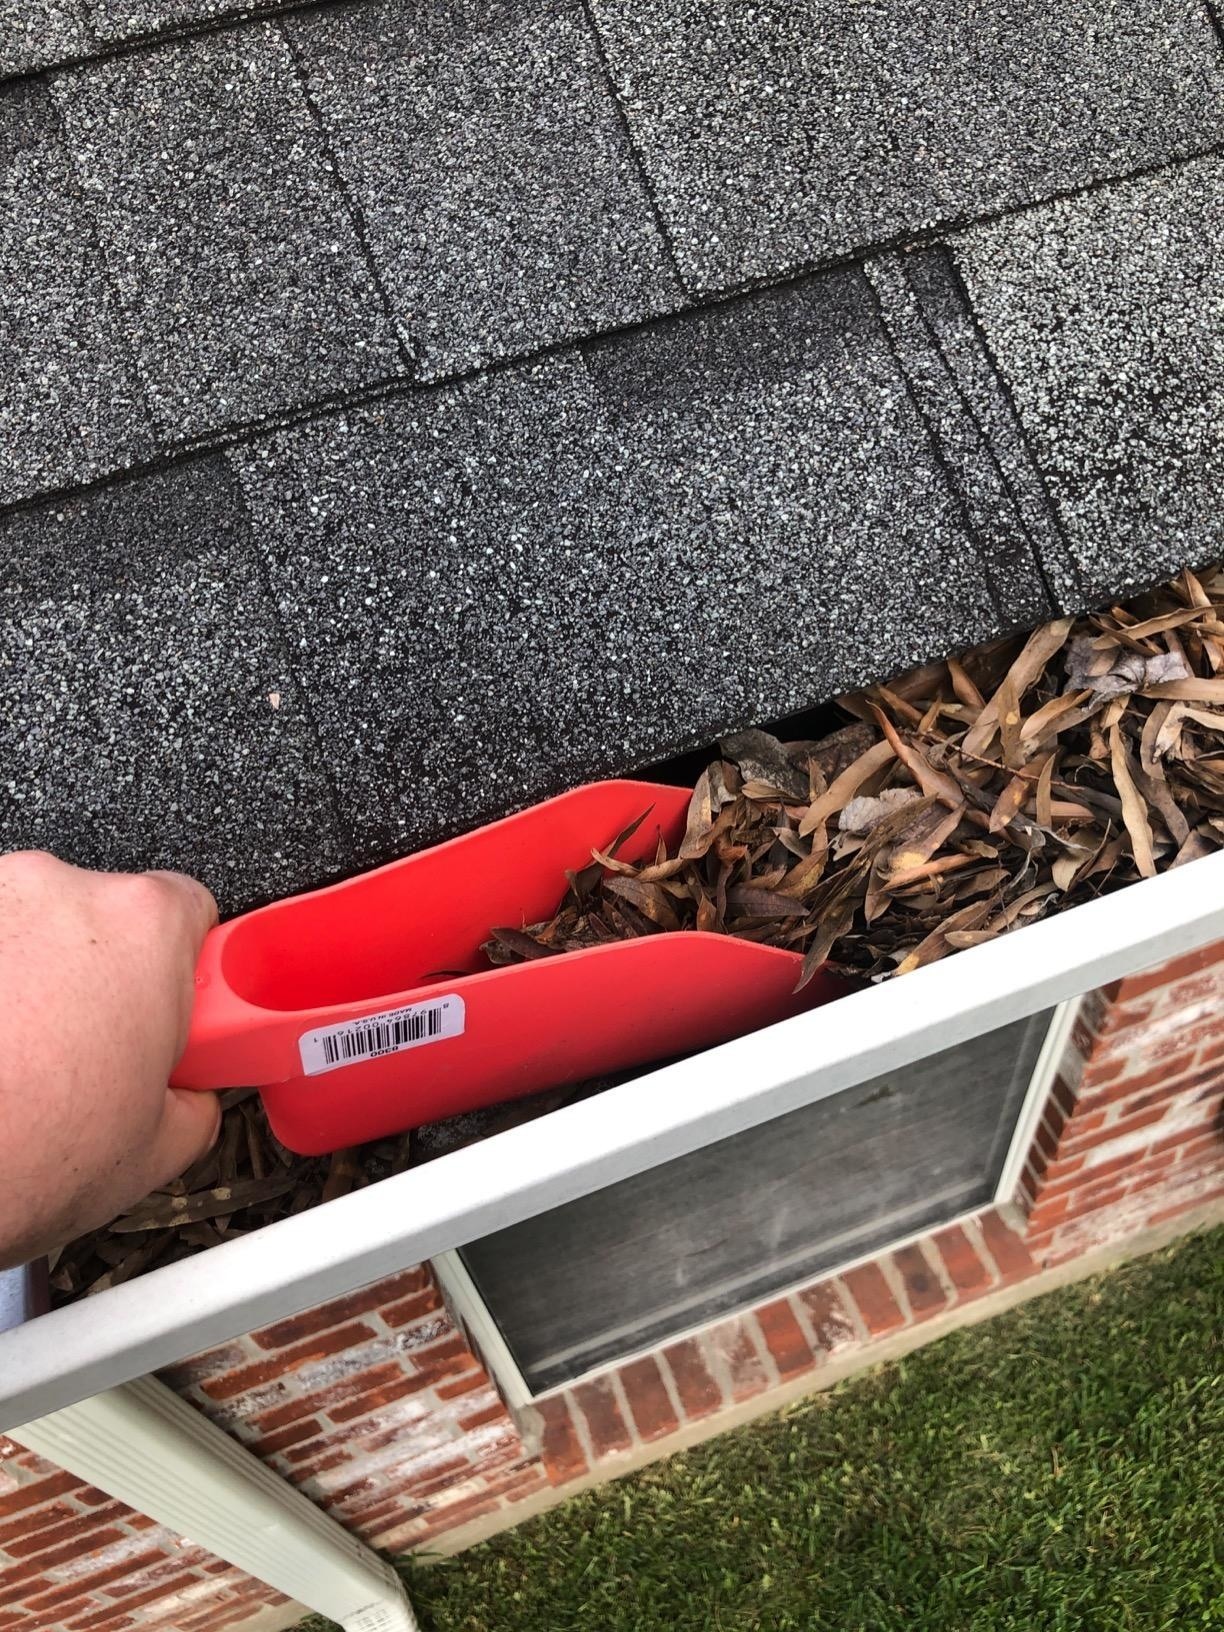 Reviewer using the red scoop to remove leaves from their gutter